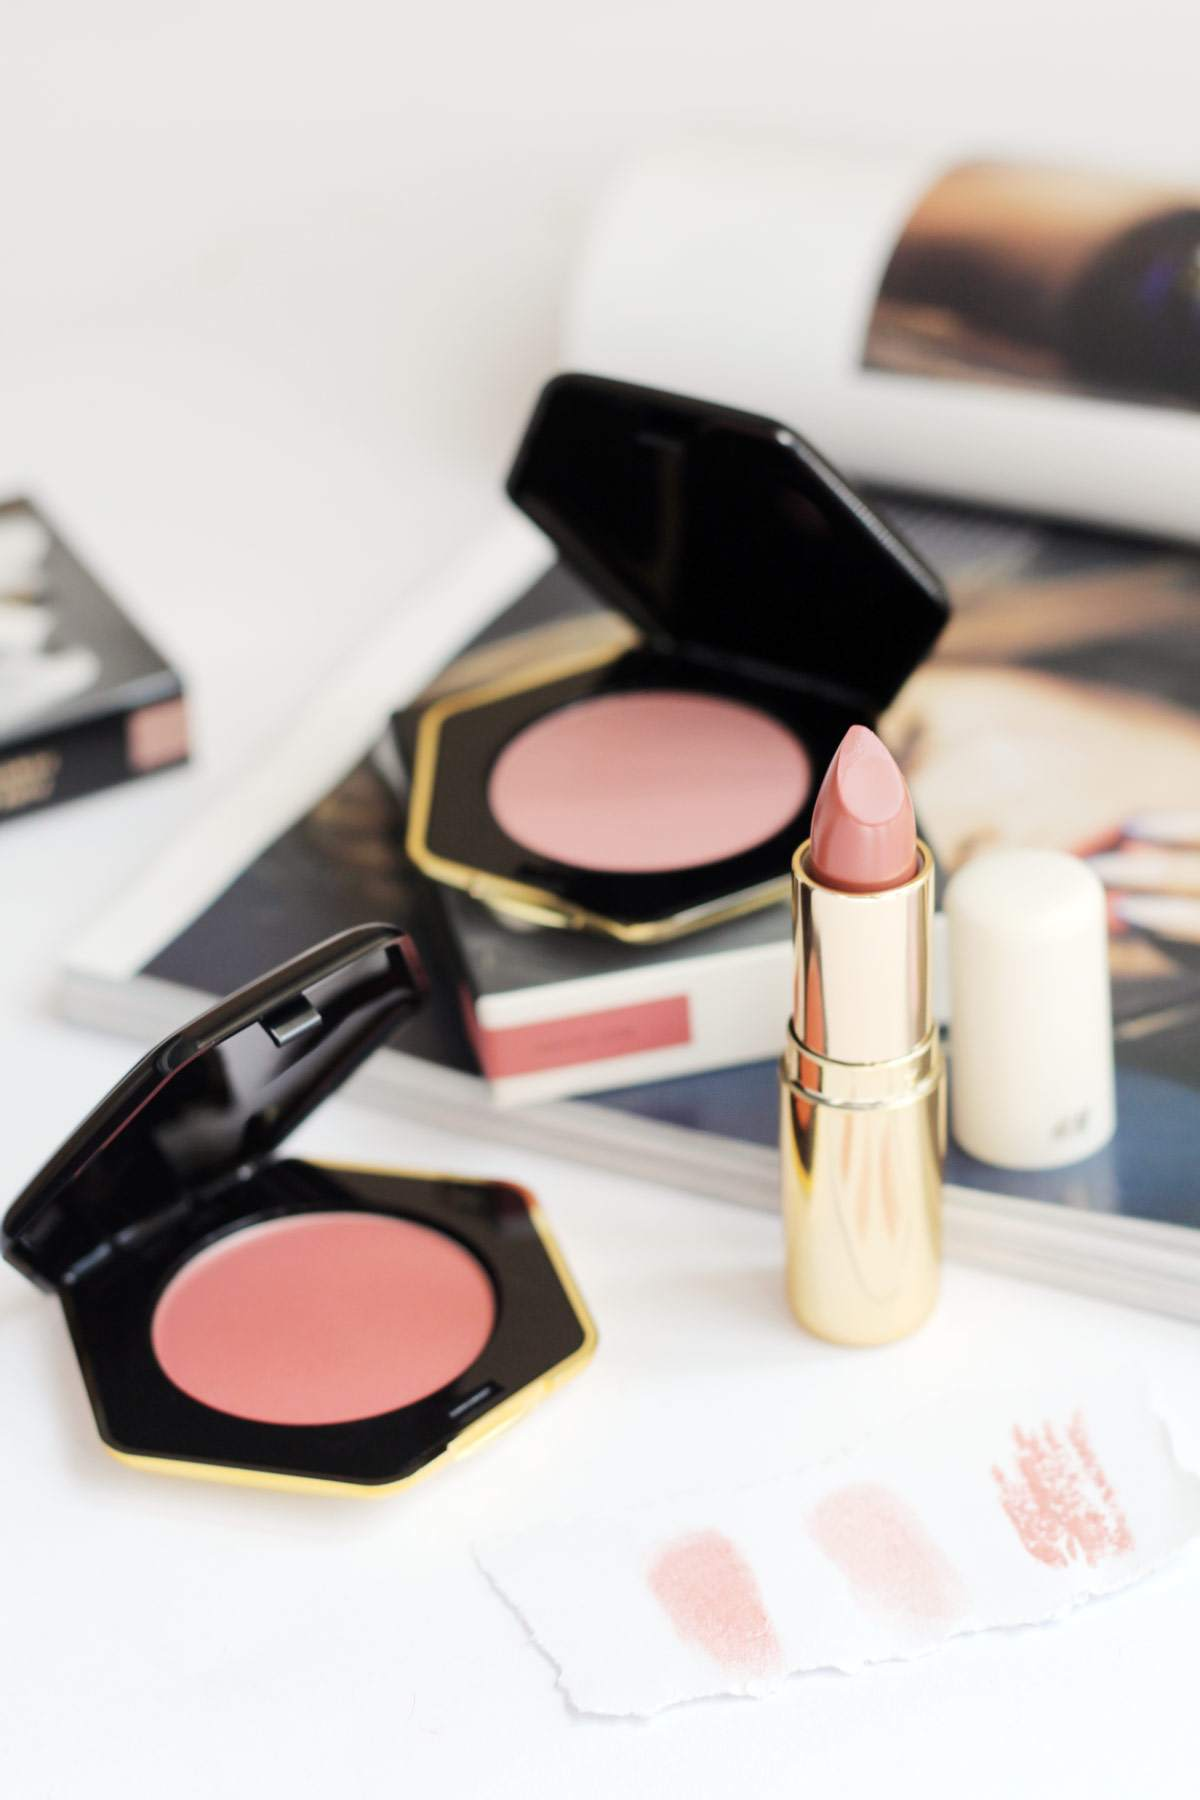 H&M-beauty-blush-eyeshadow-lipstick-rose-pink-high-street-beauty-edit